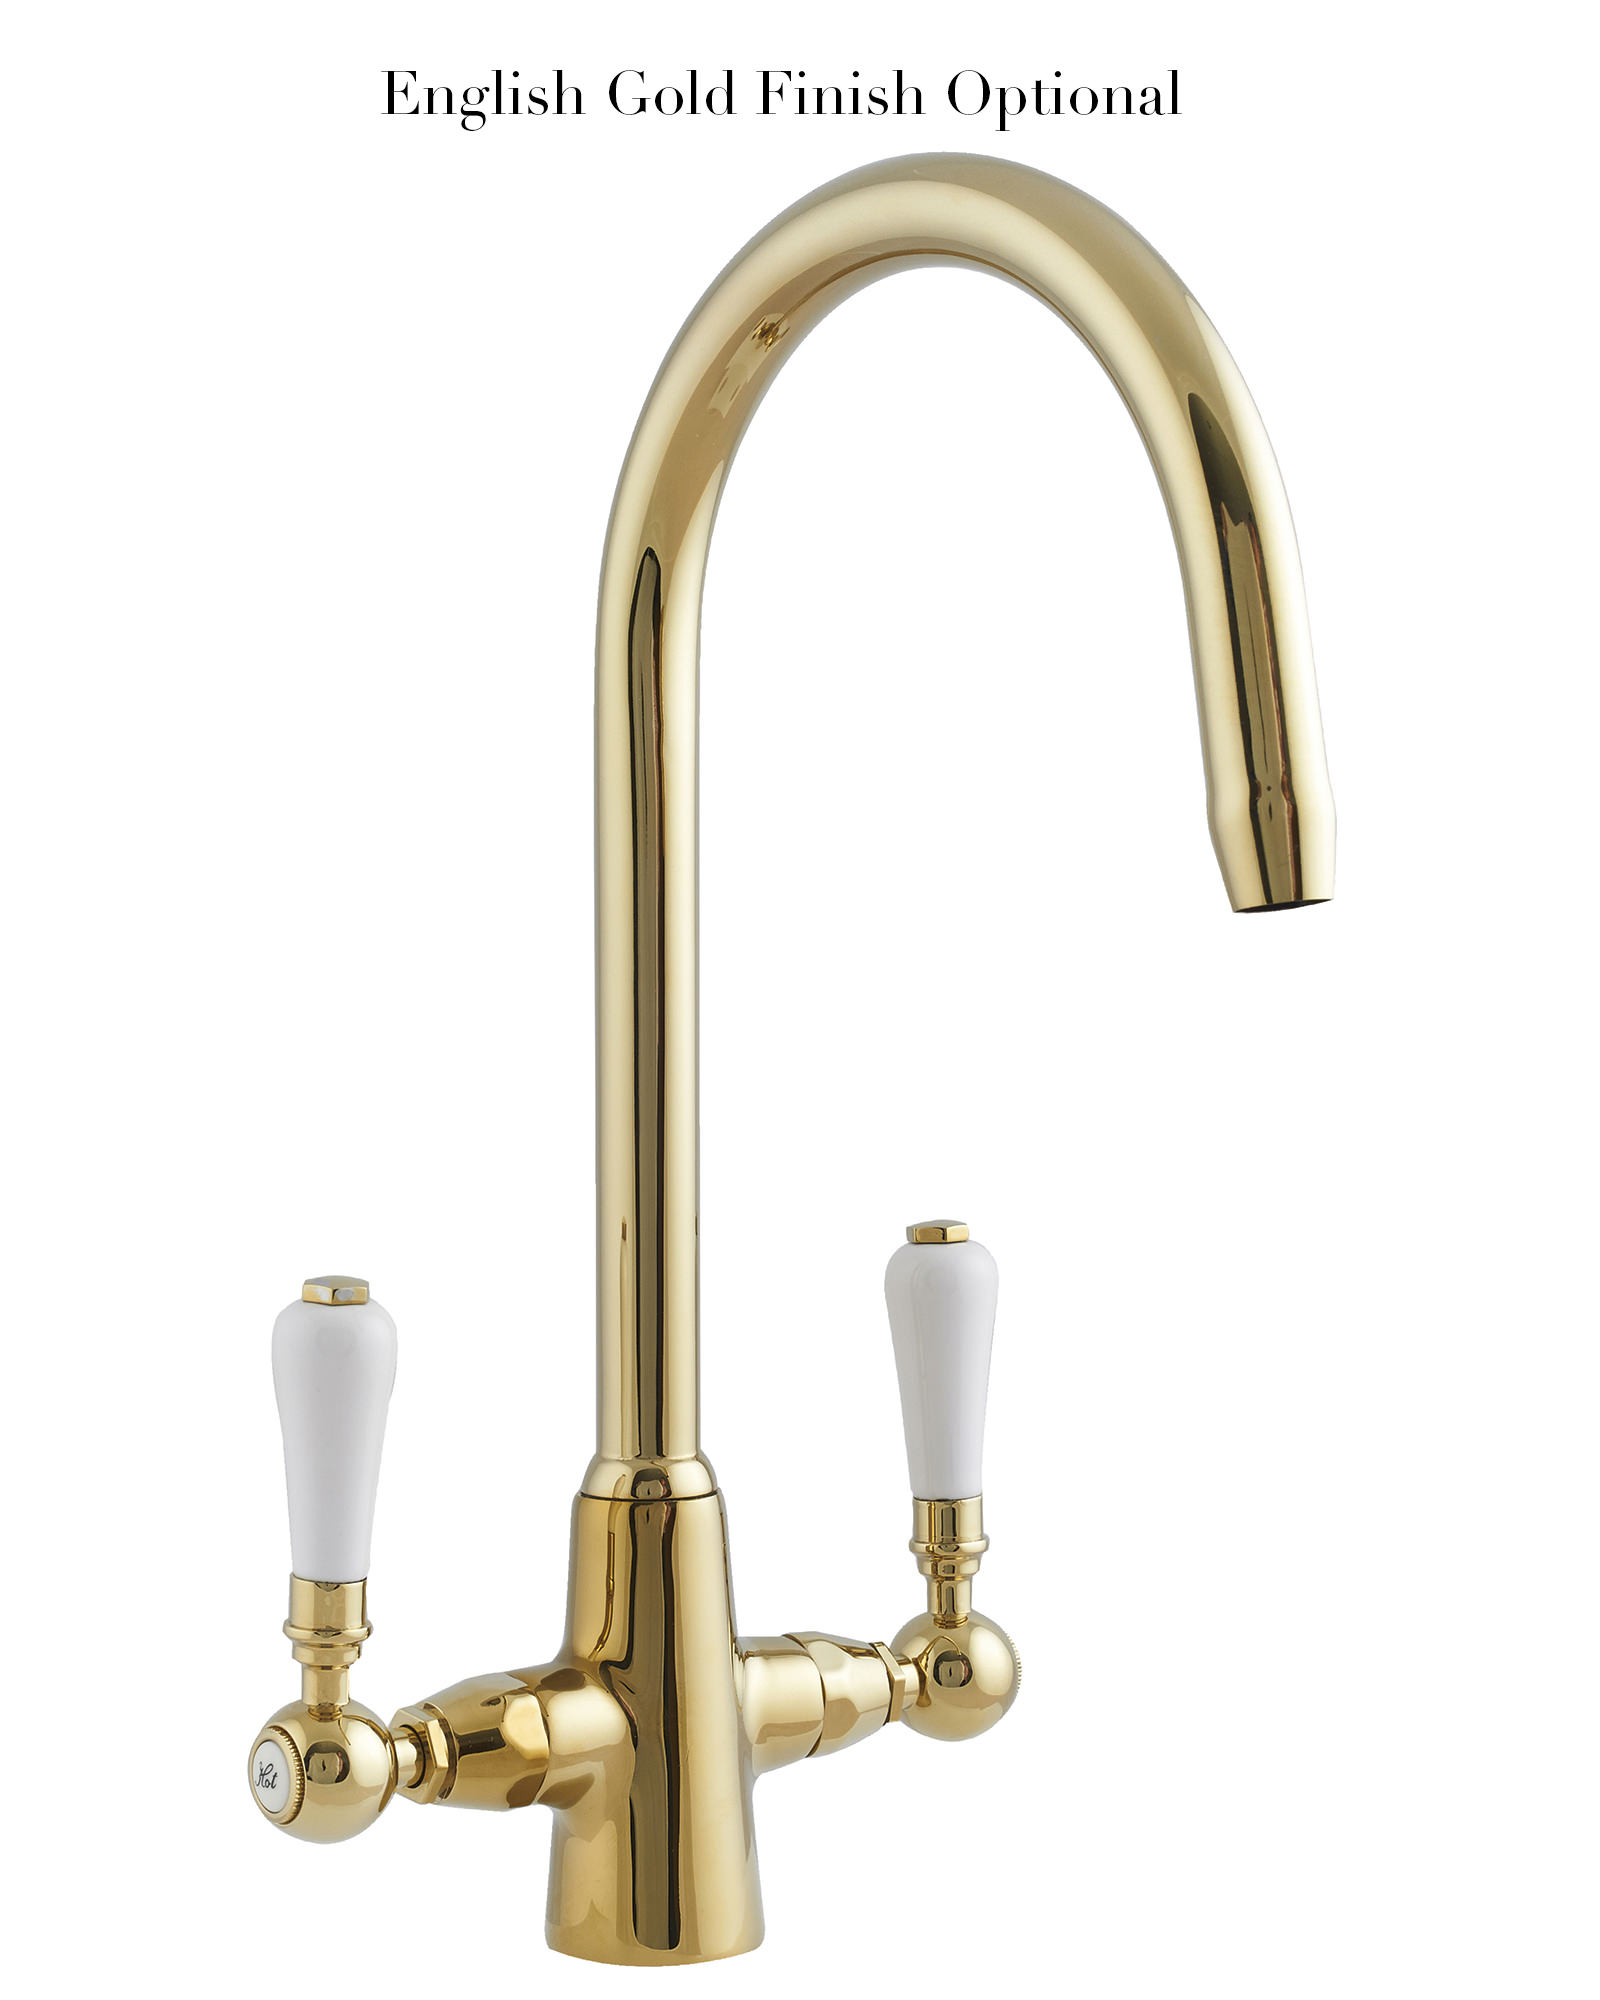 Twin Kitchen Sink : ... image of Astracast Colonial Monobloc Twin Lever Kitchen Sink Mixer Tap